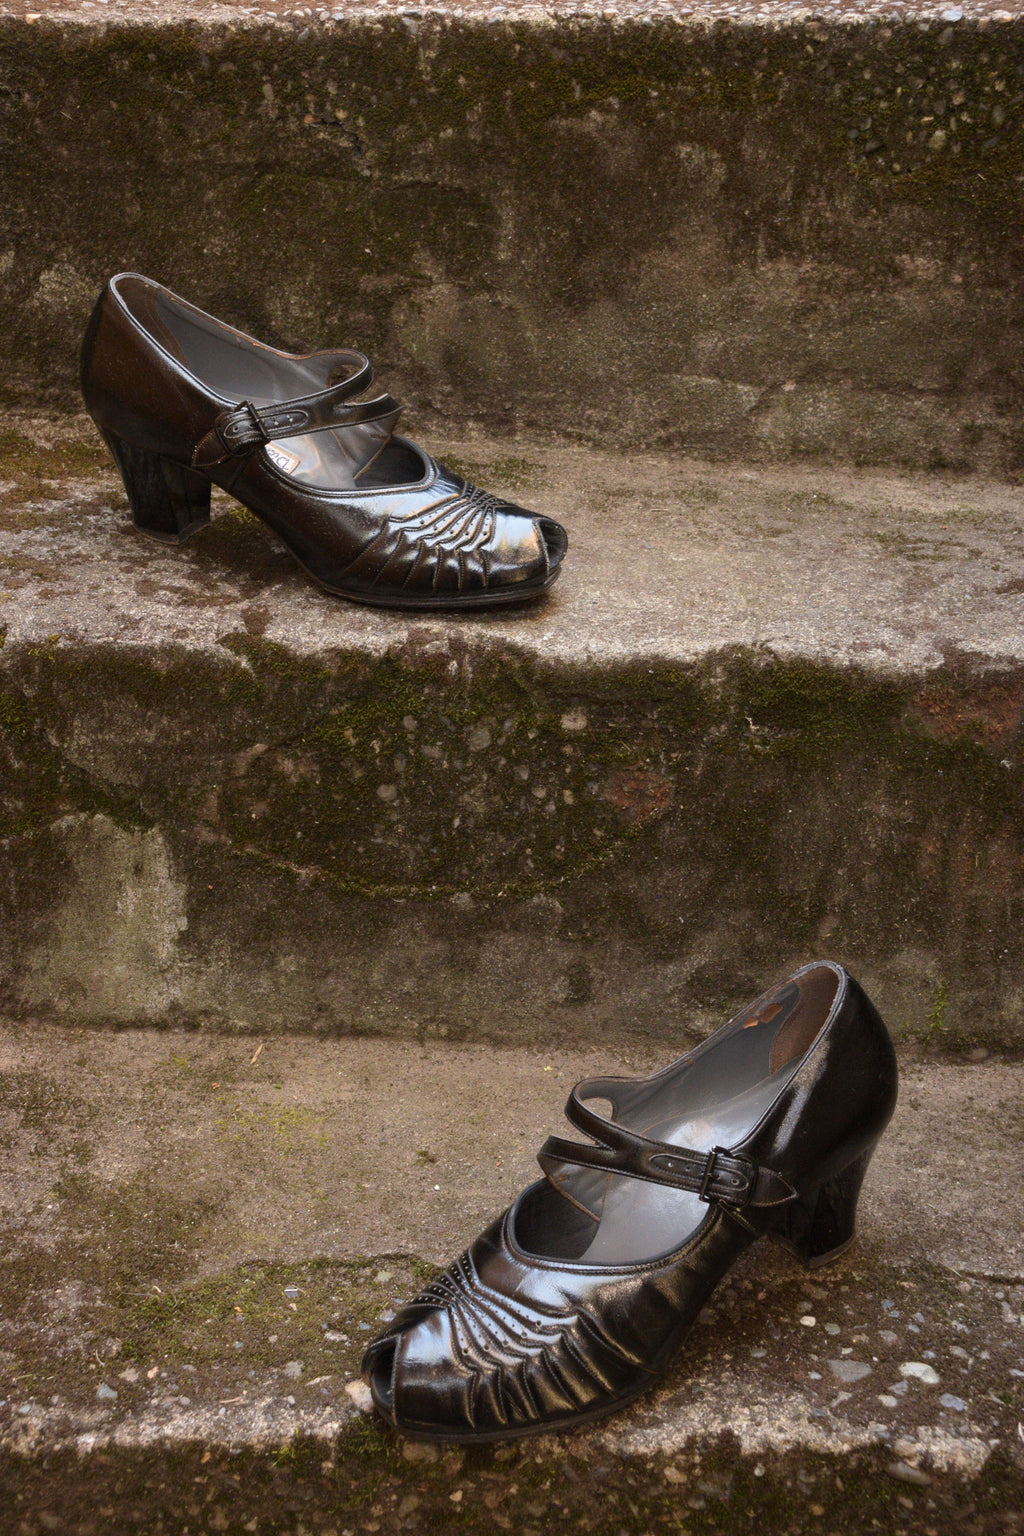 Glossy Late 1930s Patent Leather High Heels with Peep Toe and Strap Shoe Size 7 B US